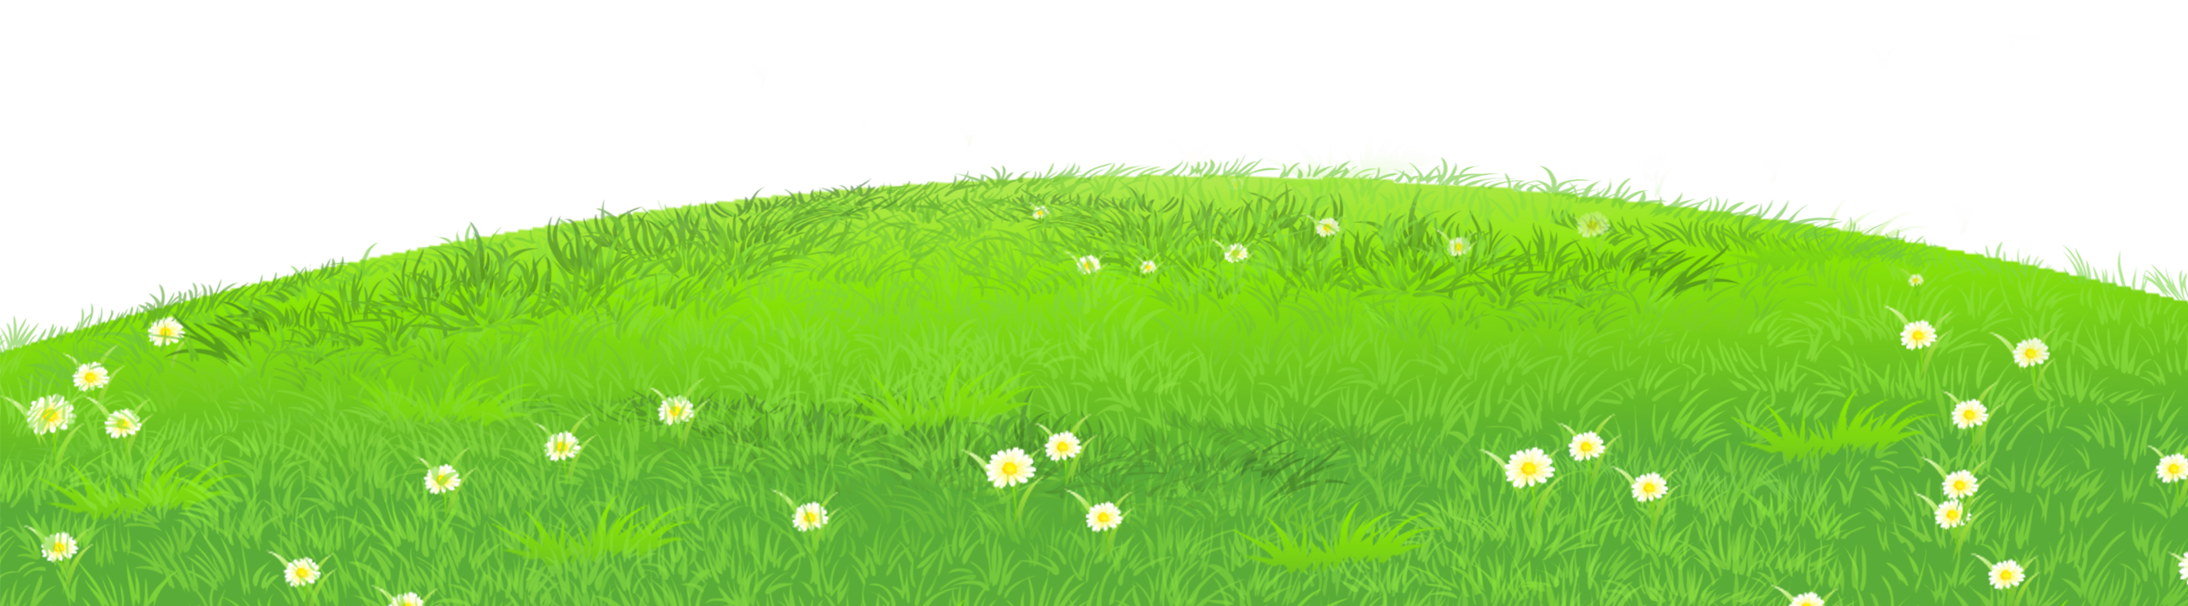 Grass with daisies png. Sunny clipart meadow